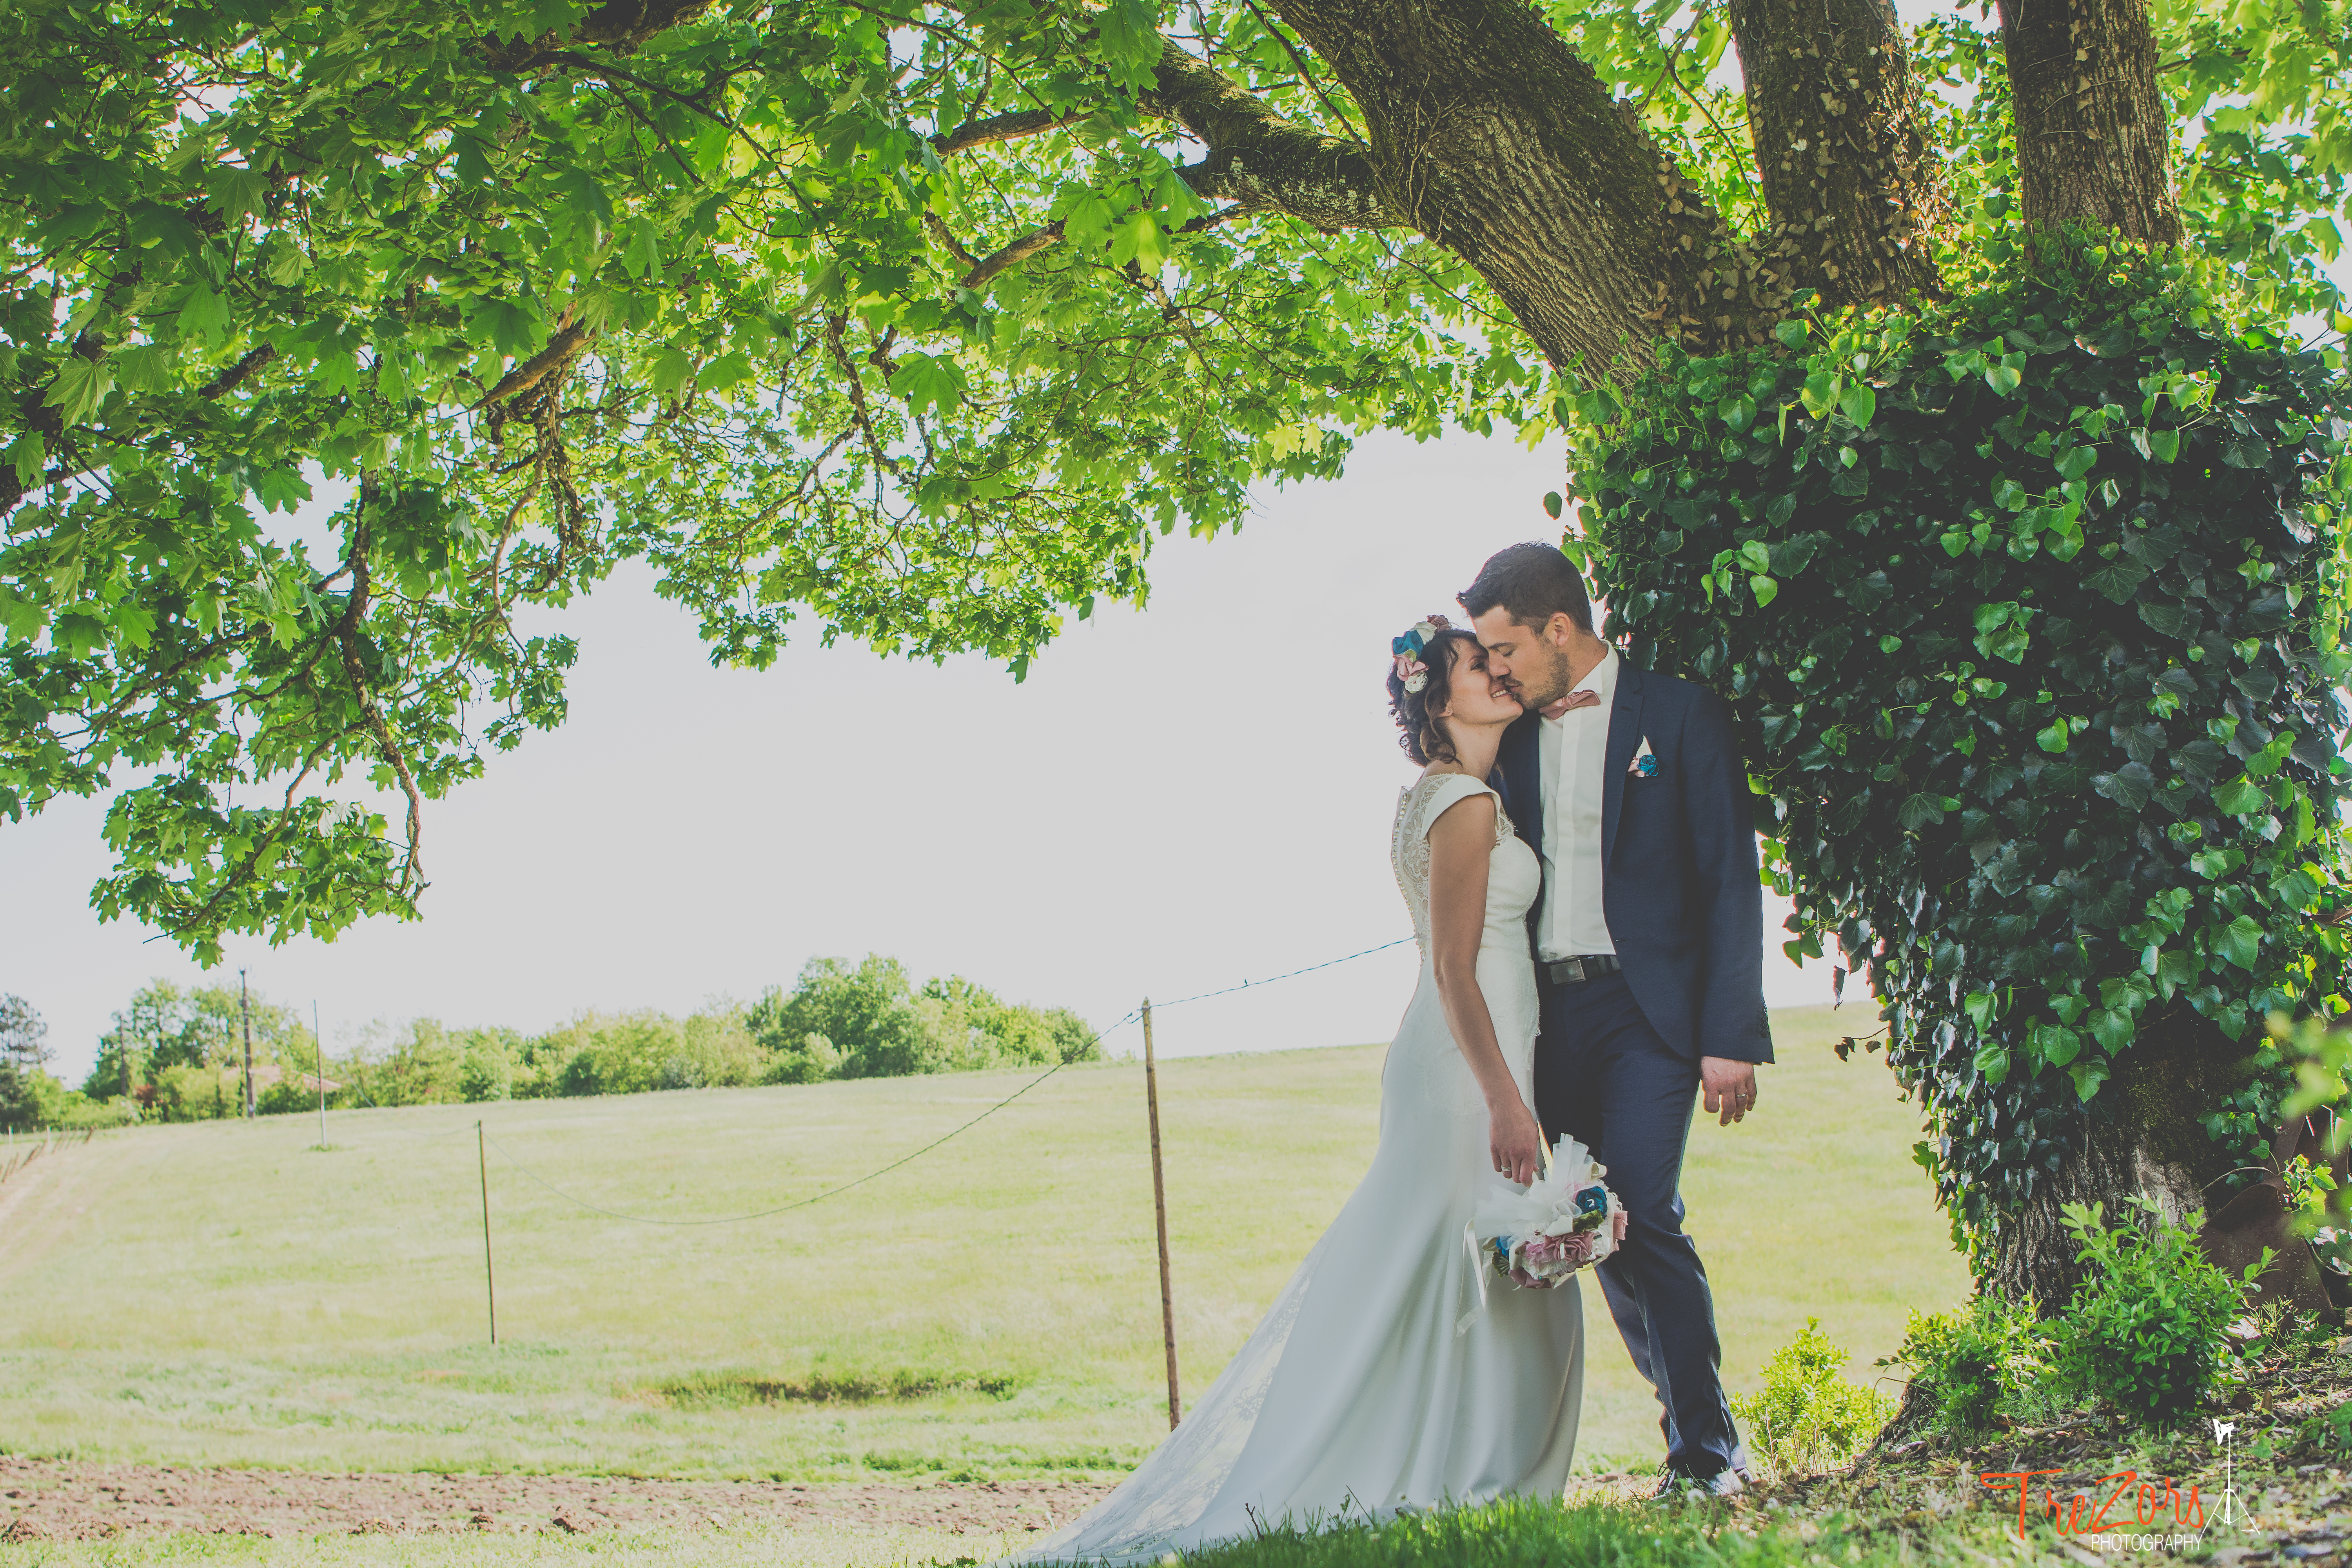 trezors-photography-photographe-professionnel-mariage-inspiration-romantic-chic-made-in-Tarn-207